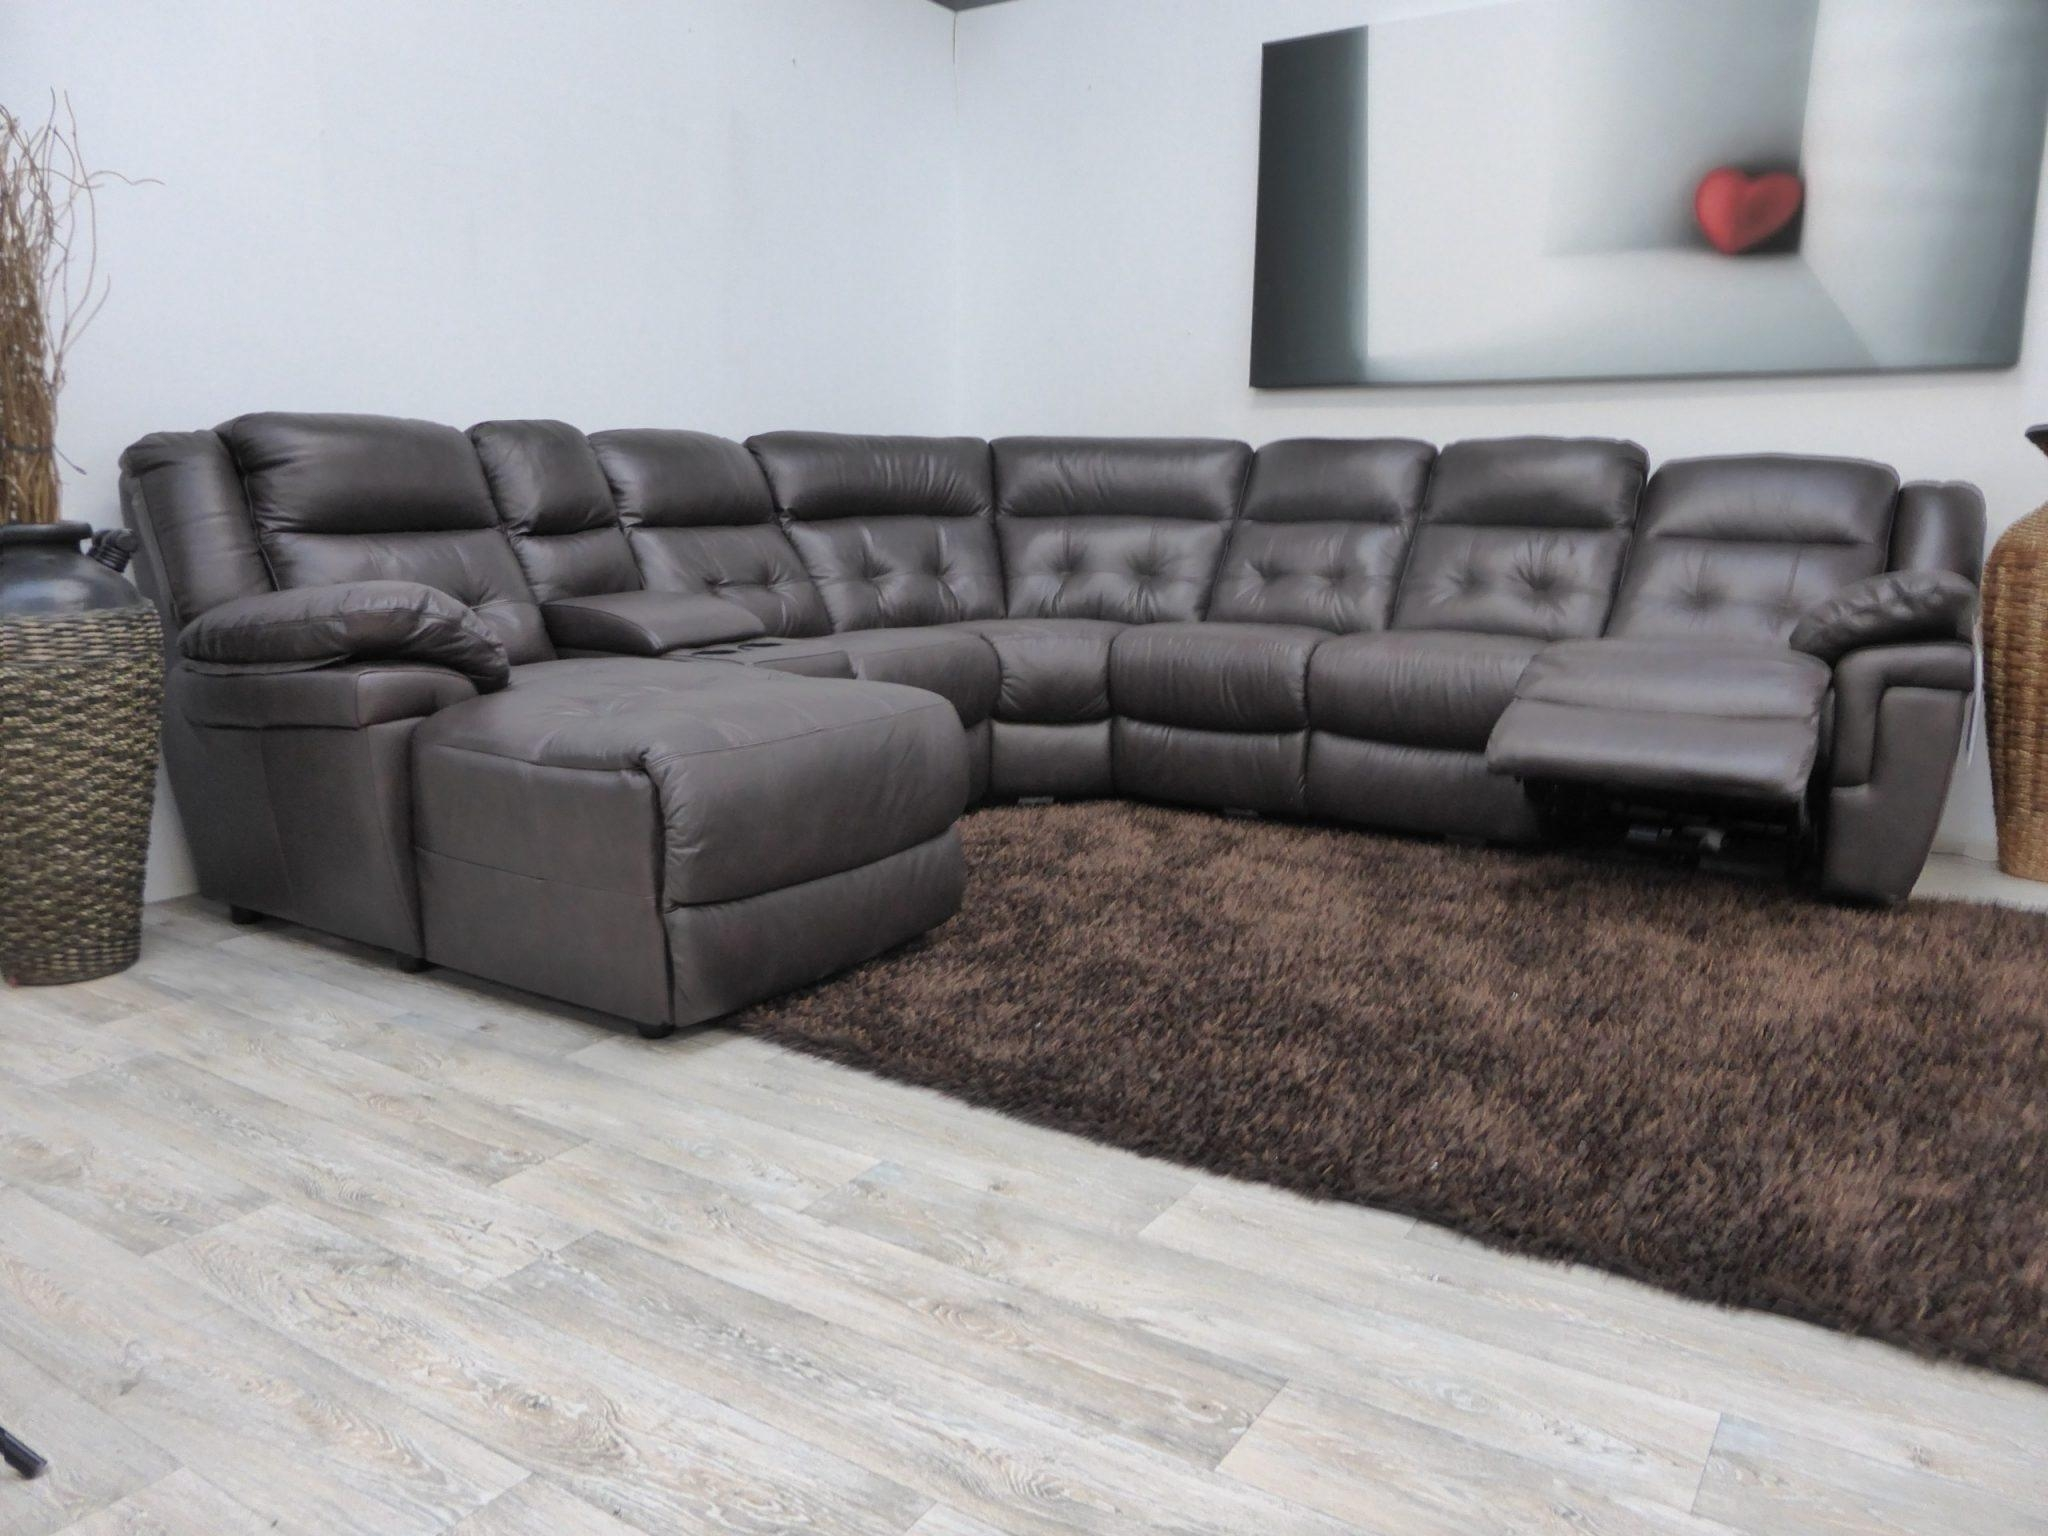 Lazy Boy Sectionals >> 20 Best Ideas Lazy Boy Leather Sectional | Sofa Ideas